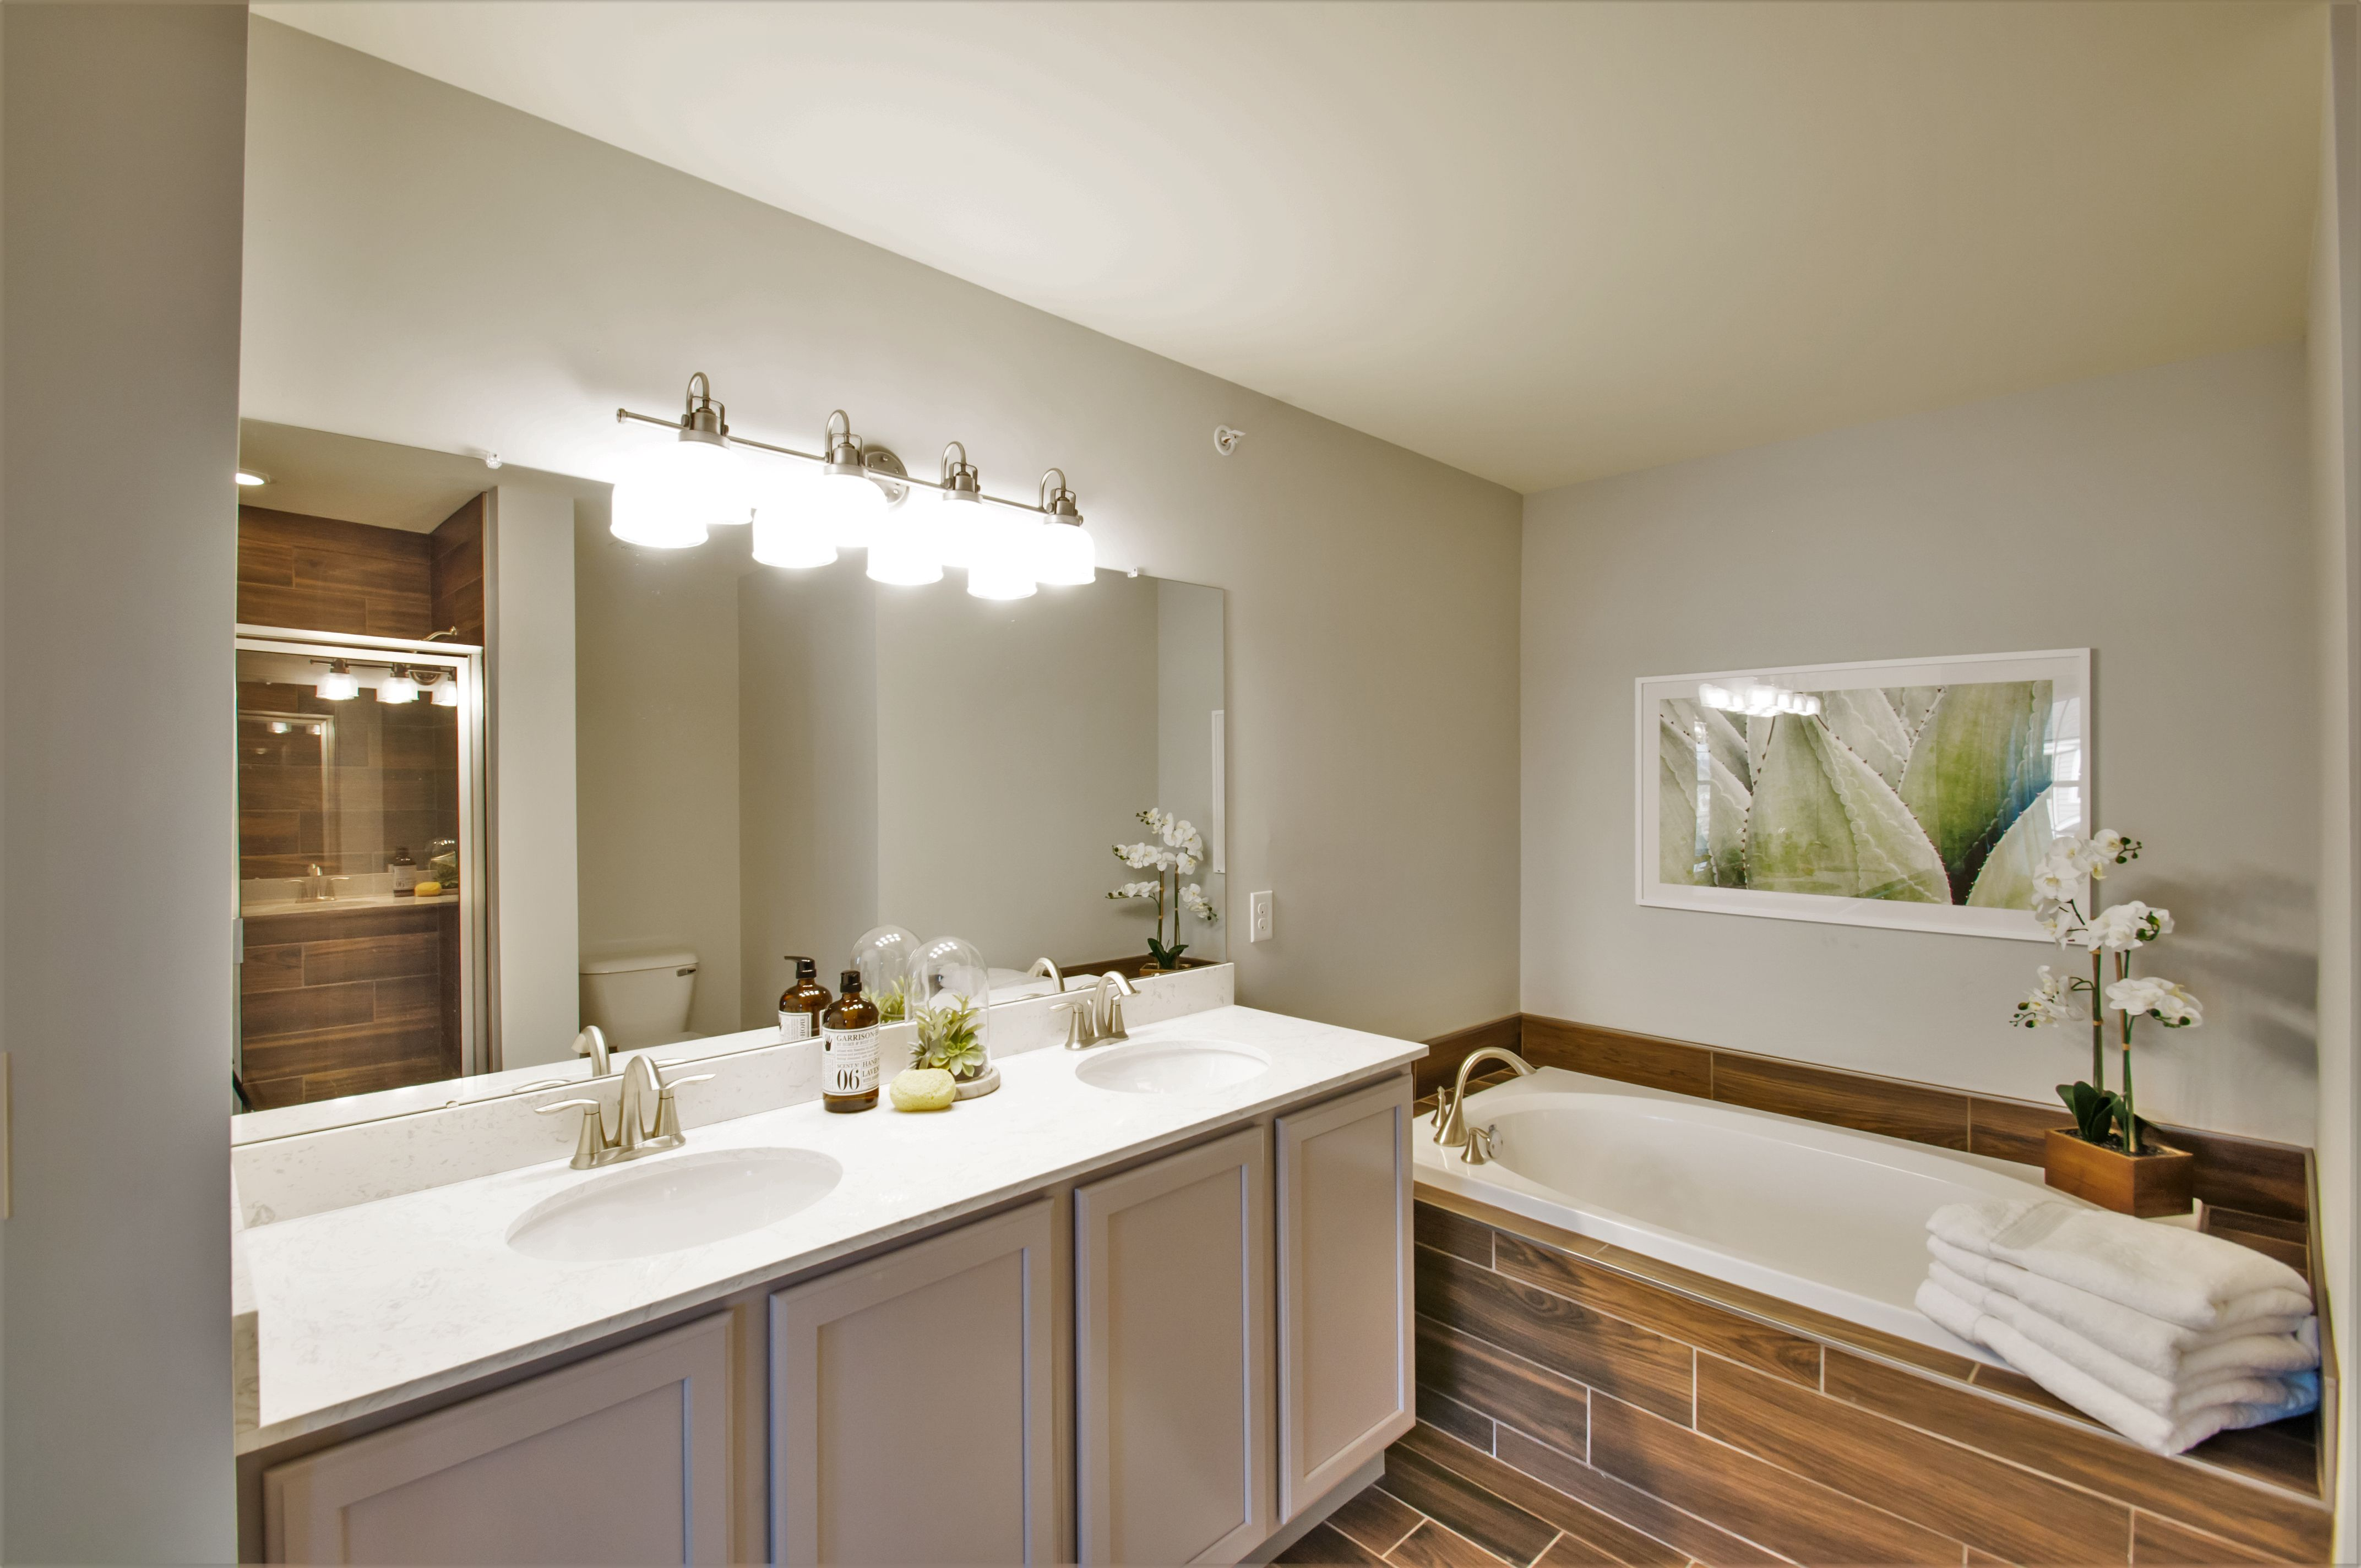 Bathroom featured in the Stargrass By Sal Lapio Homes in Allentown-Bethlehem, PA